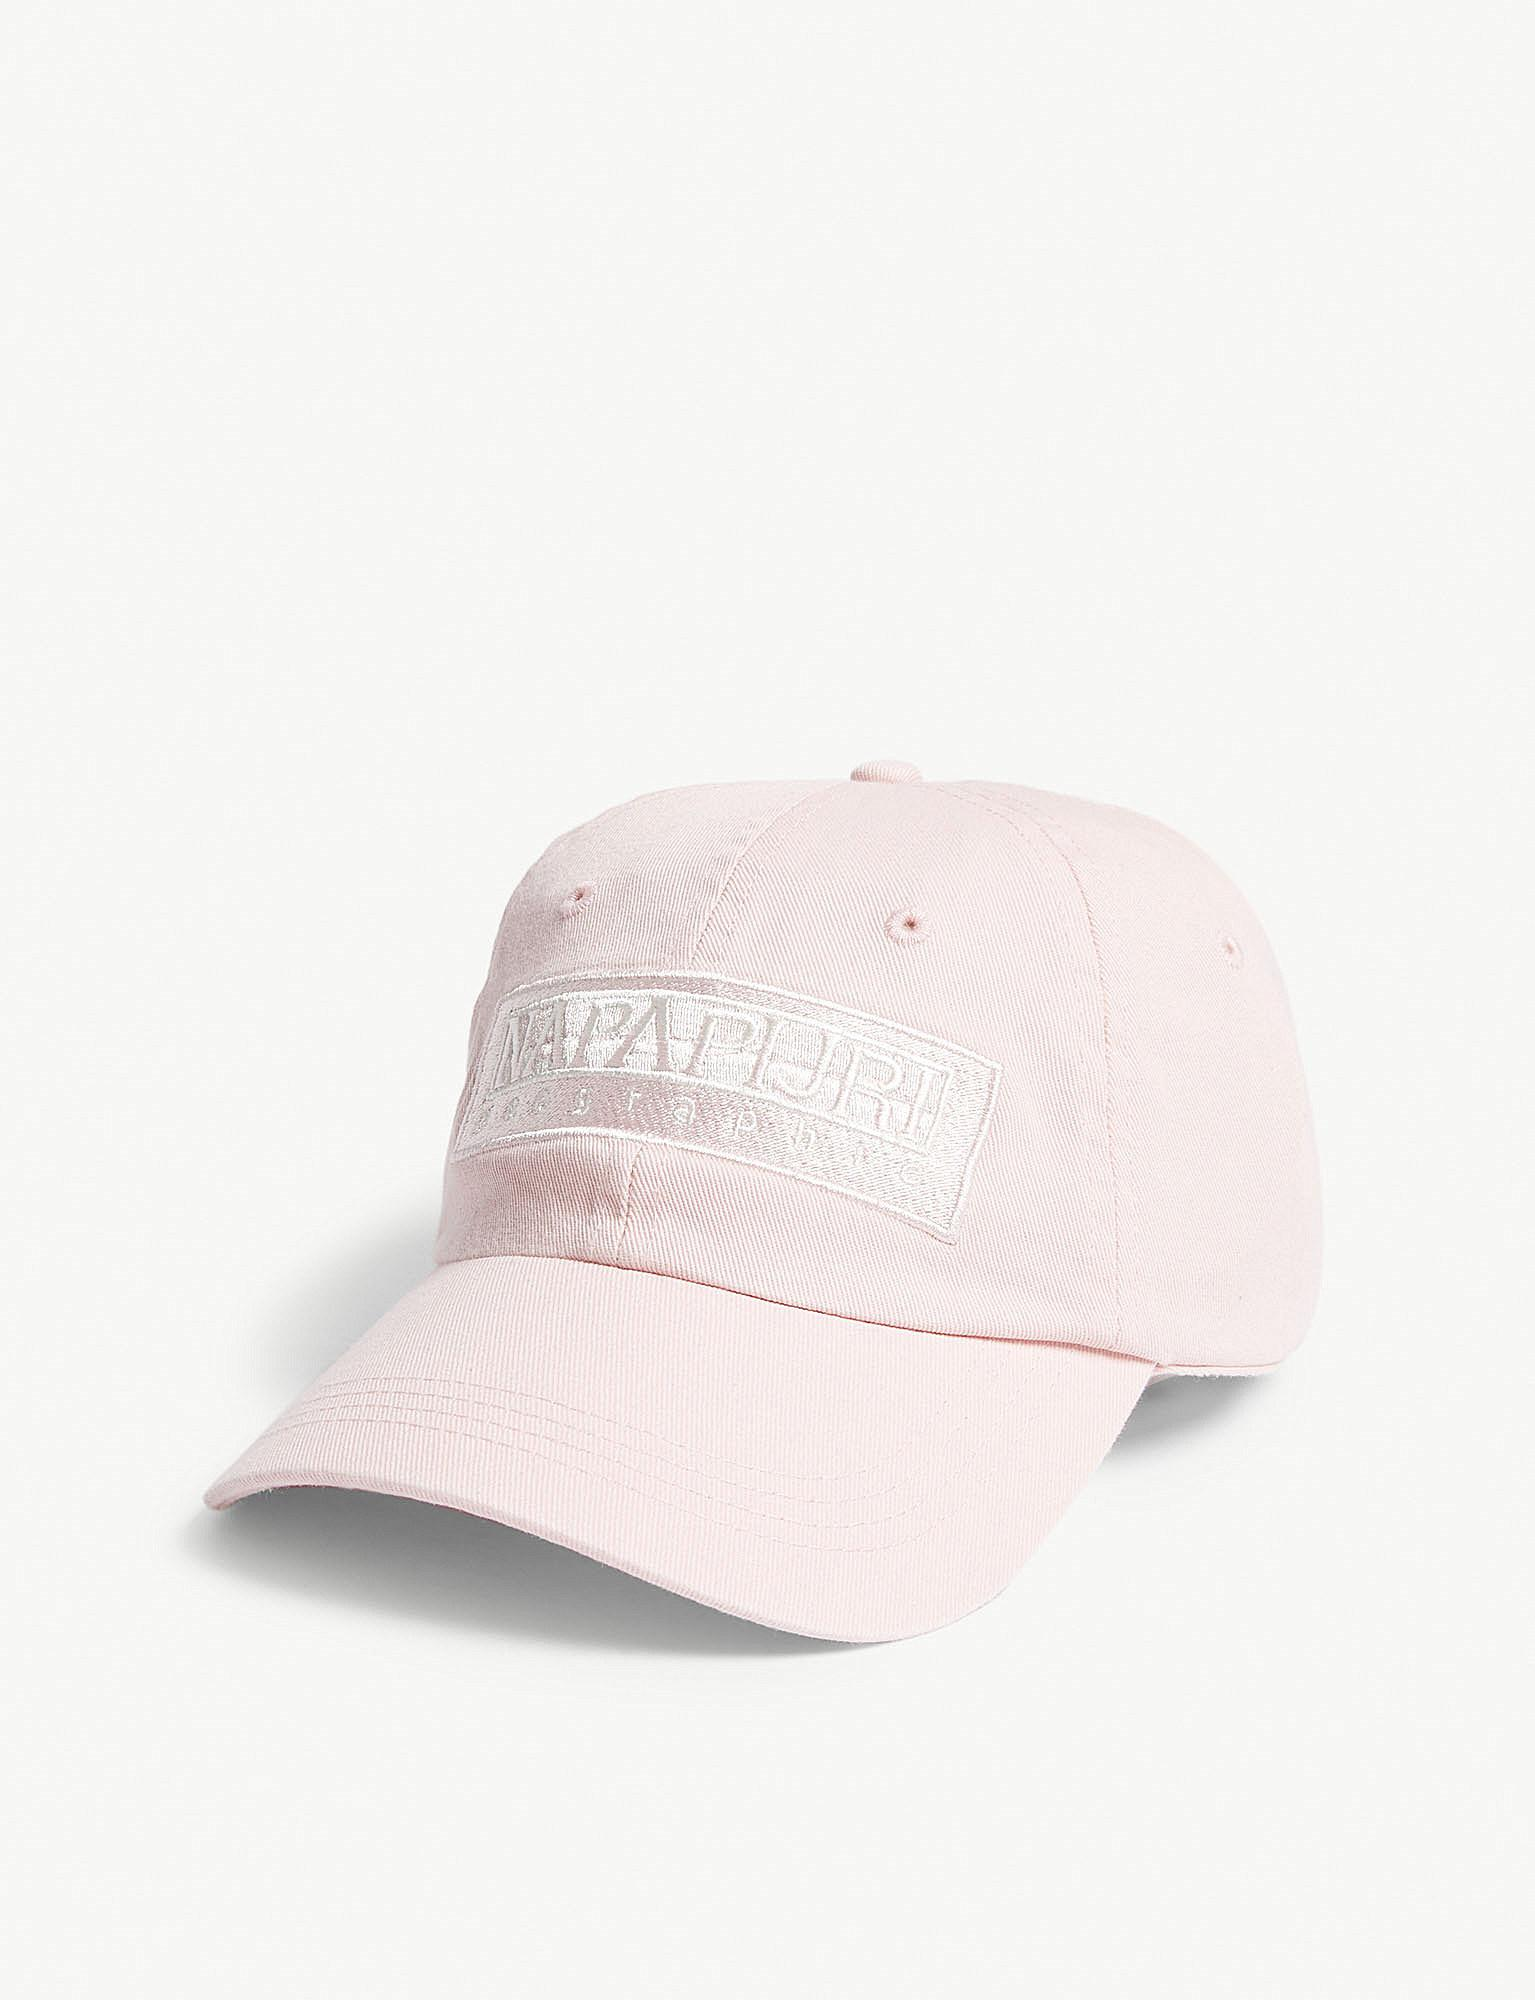 Lyst - Napapijri Logo Cotton Strapback Cap in Pink for Men af4ac901ff6d